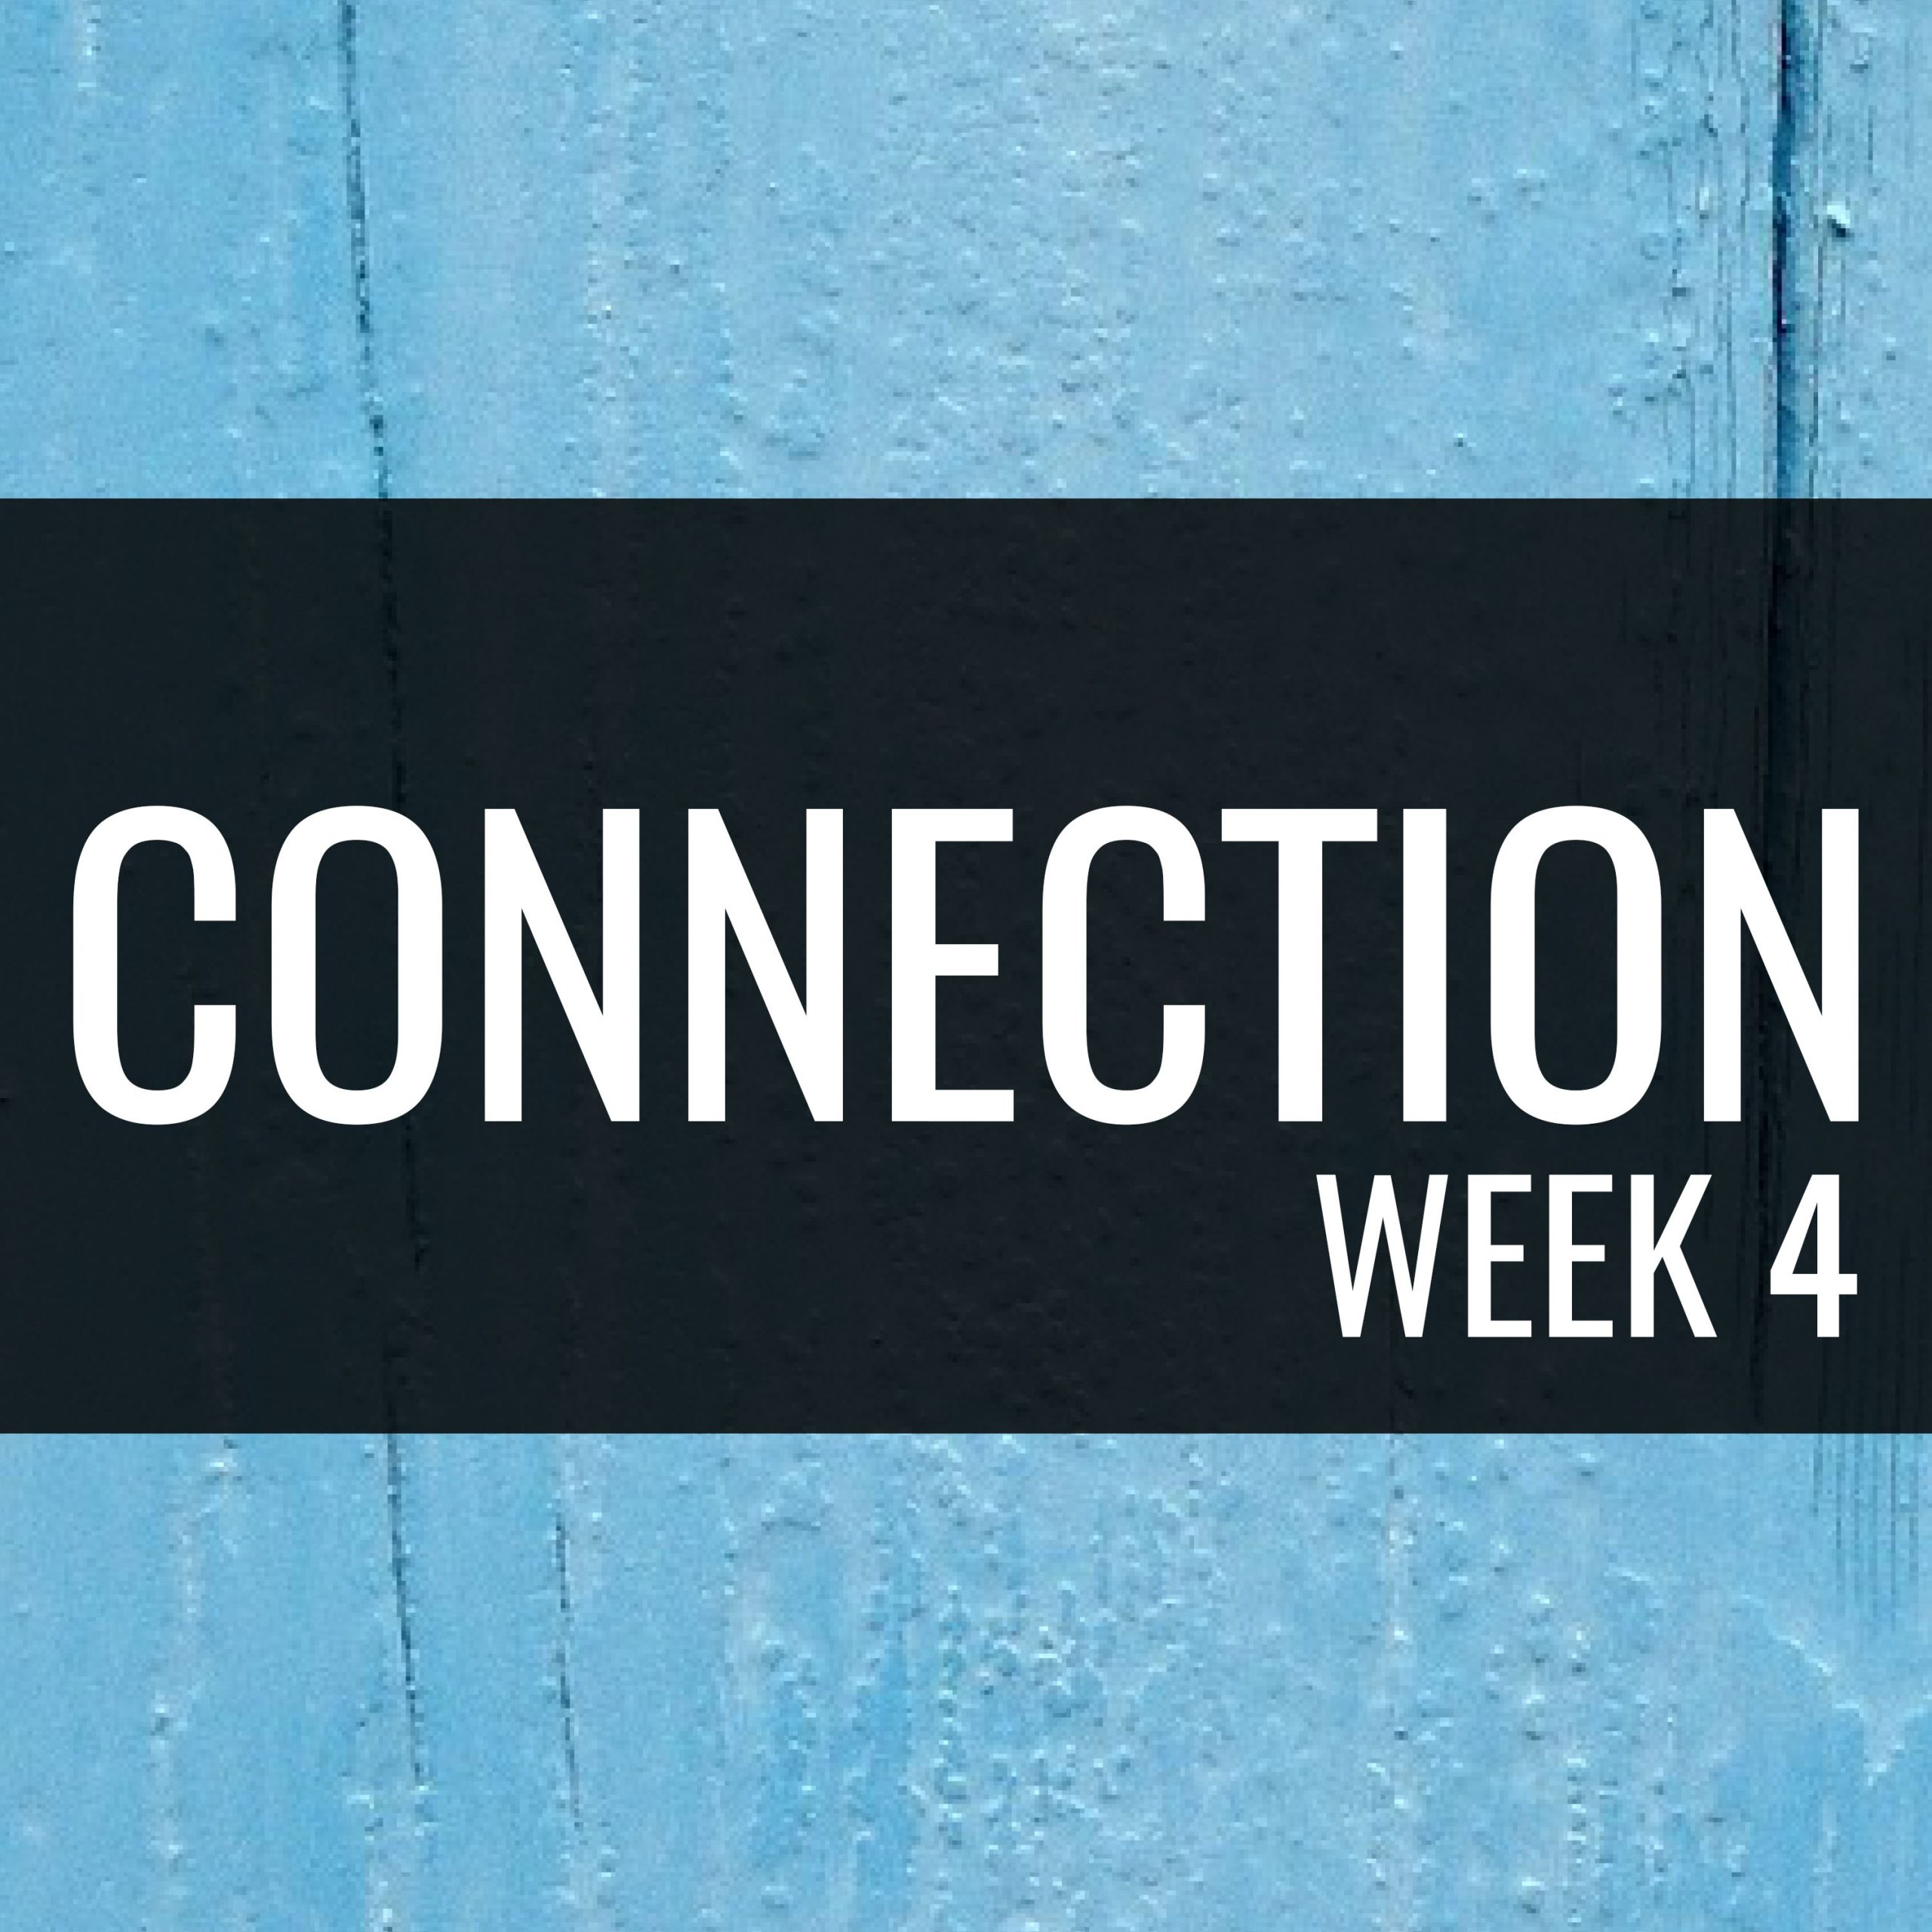 Connection: Week 4